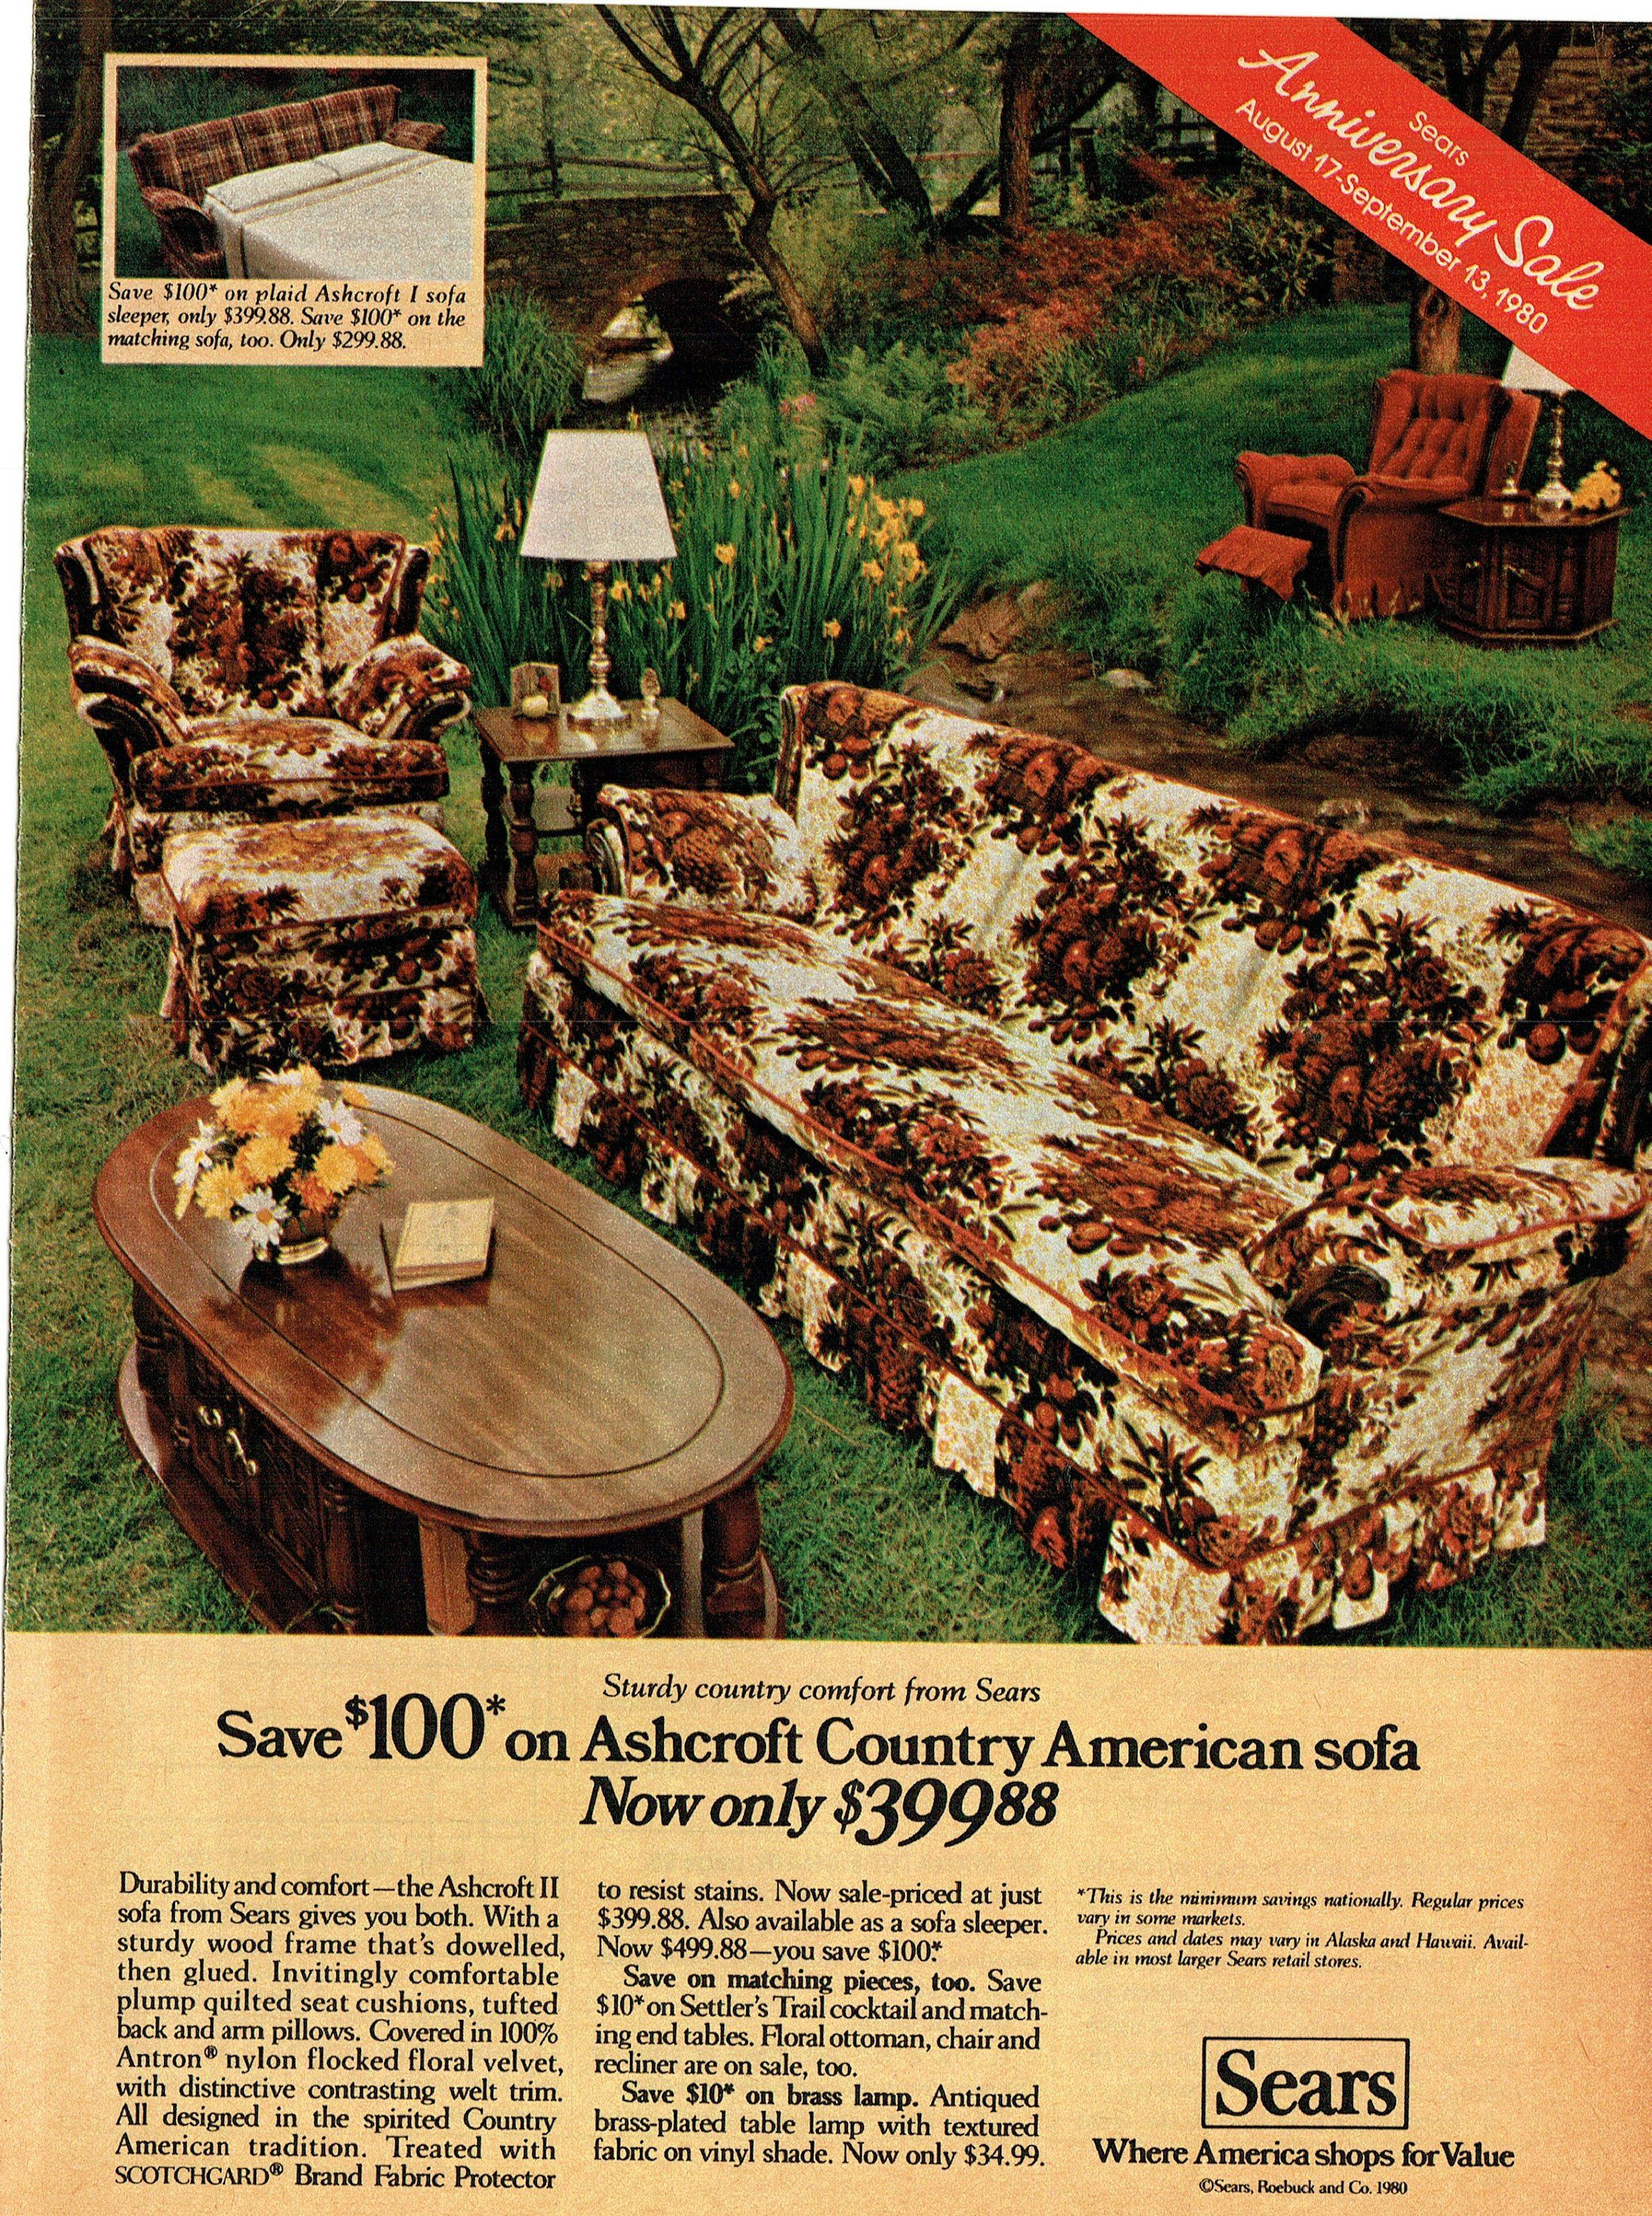 1980 Advertisement For Ashcroft Country American Sofa By Sears Etsy American Sofa Ashcroft Vintage House